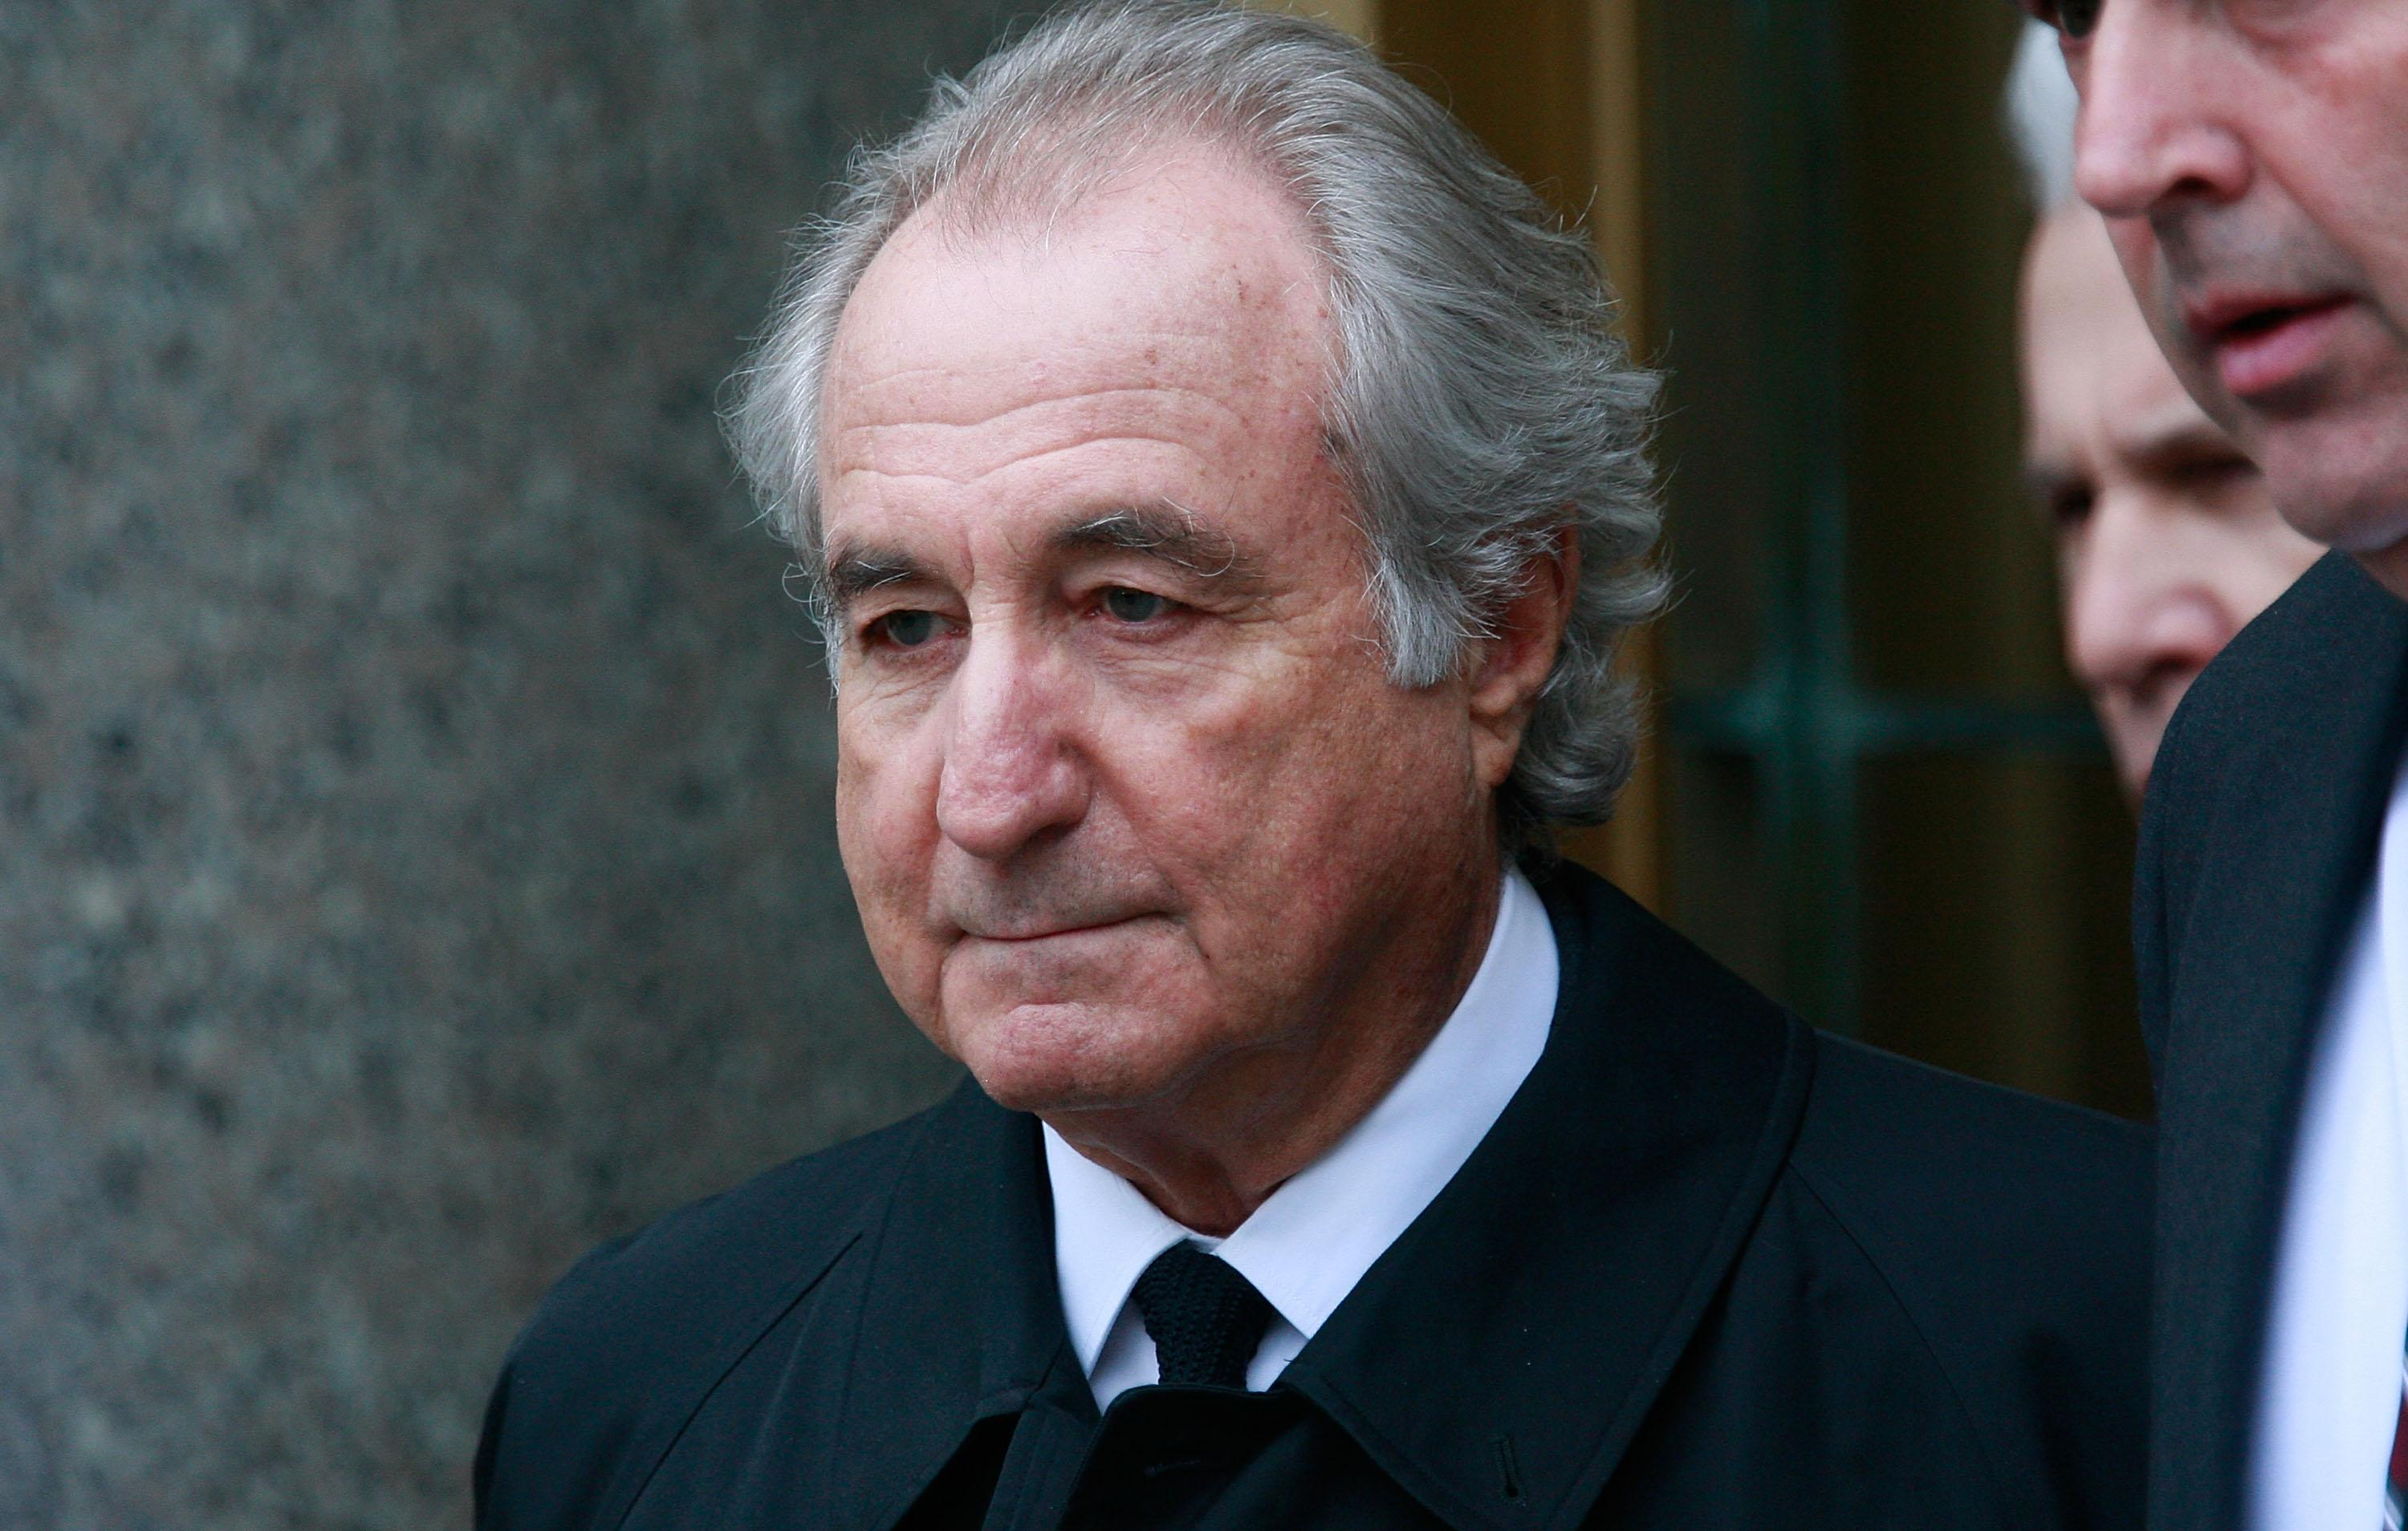 Bernie Madoff Passes Time In Prison With 'Horrible Novels